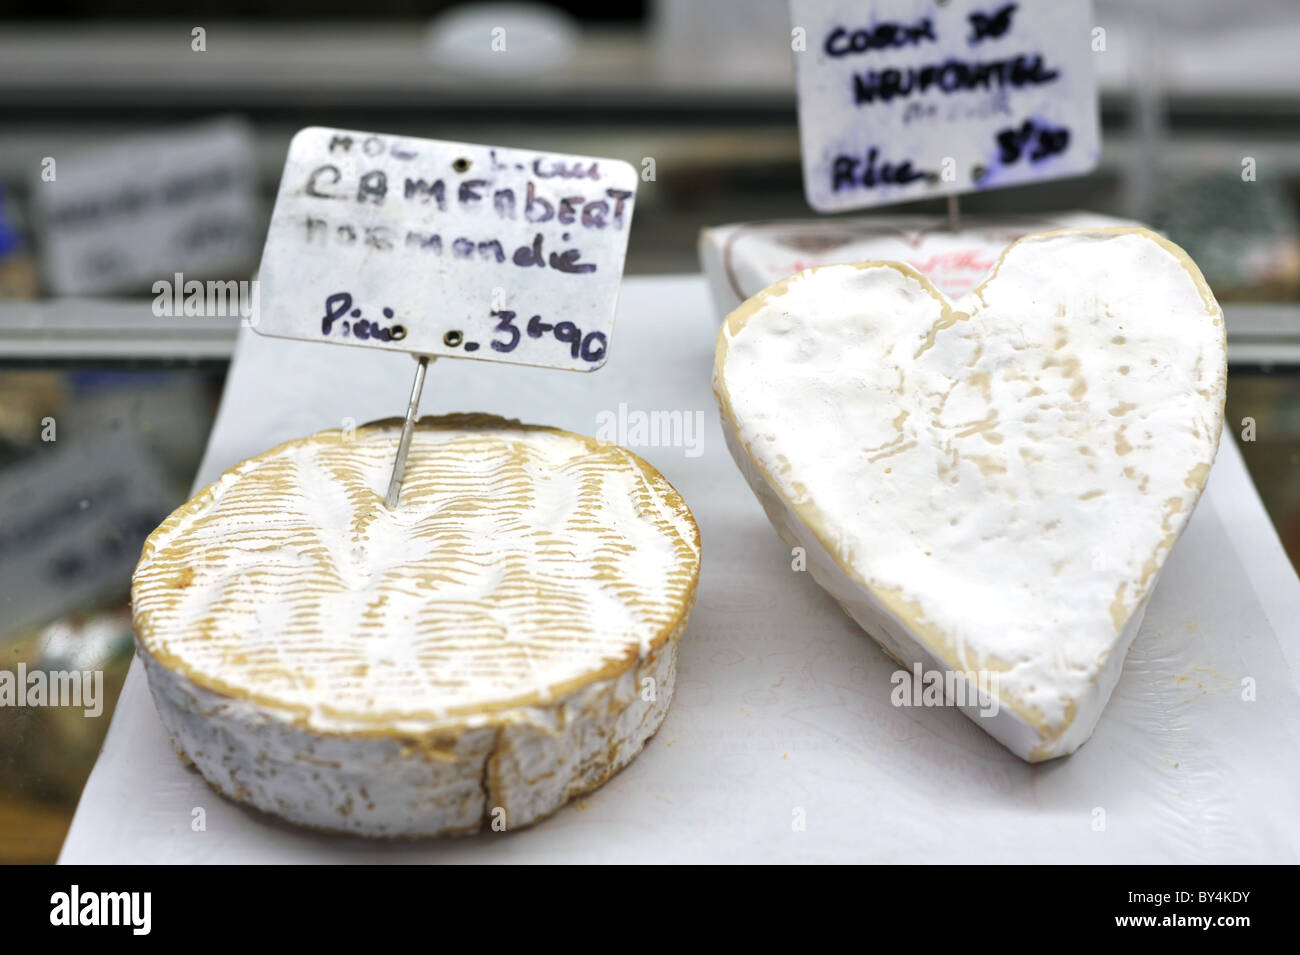 Normandy Camembert and Couer de Neufchatel cheeses for sale at a French street market - Stock Image